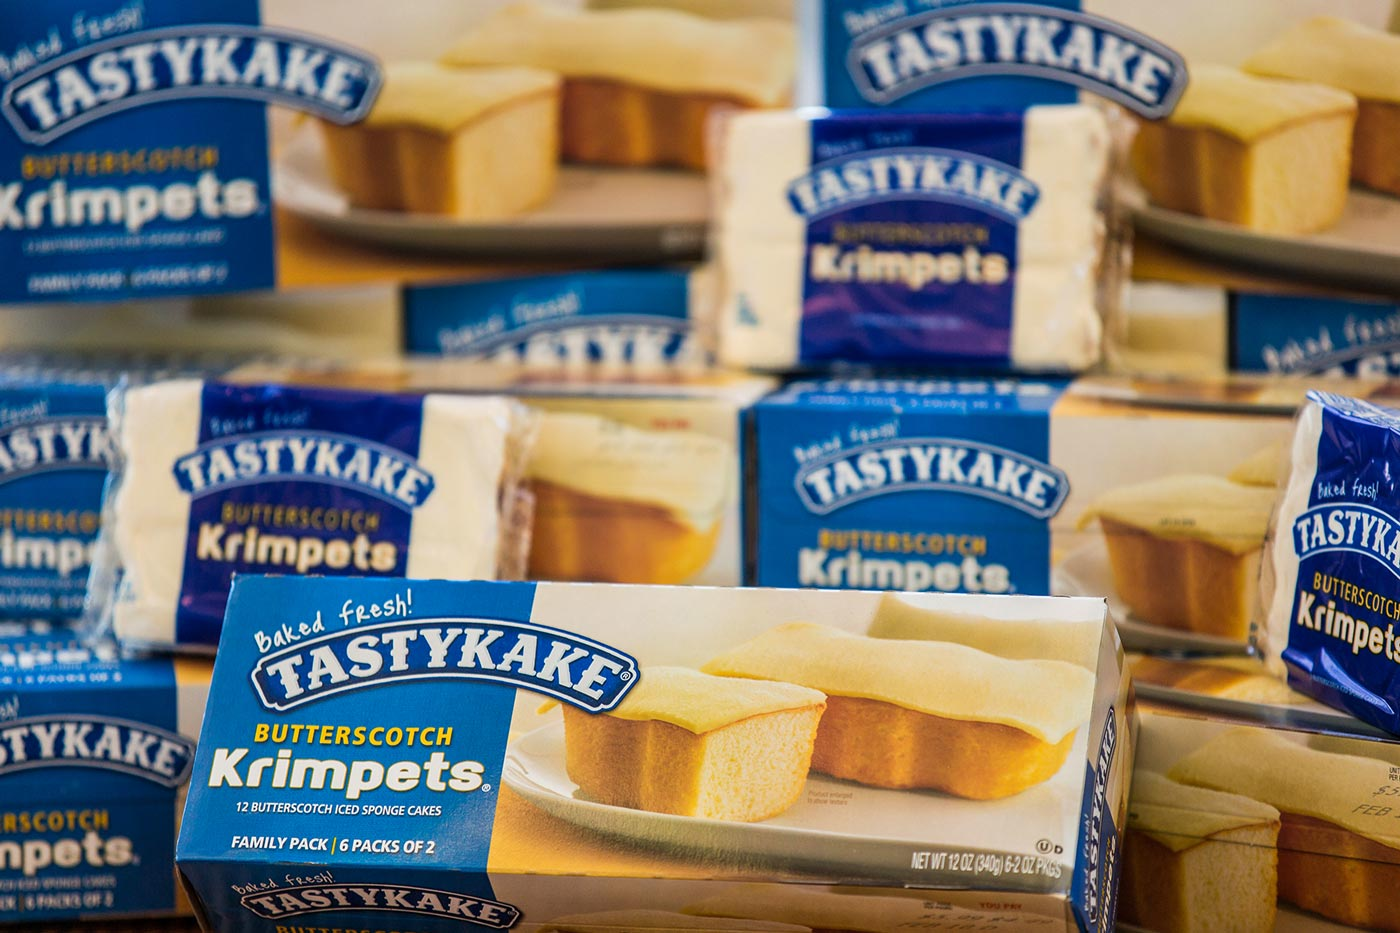 Tastykake The Tasty Baking pany Carver Mostardi graphy